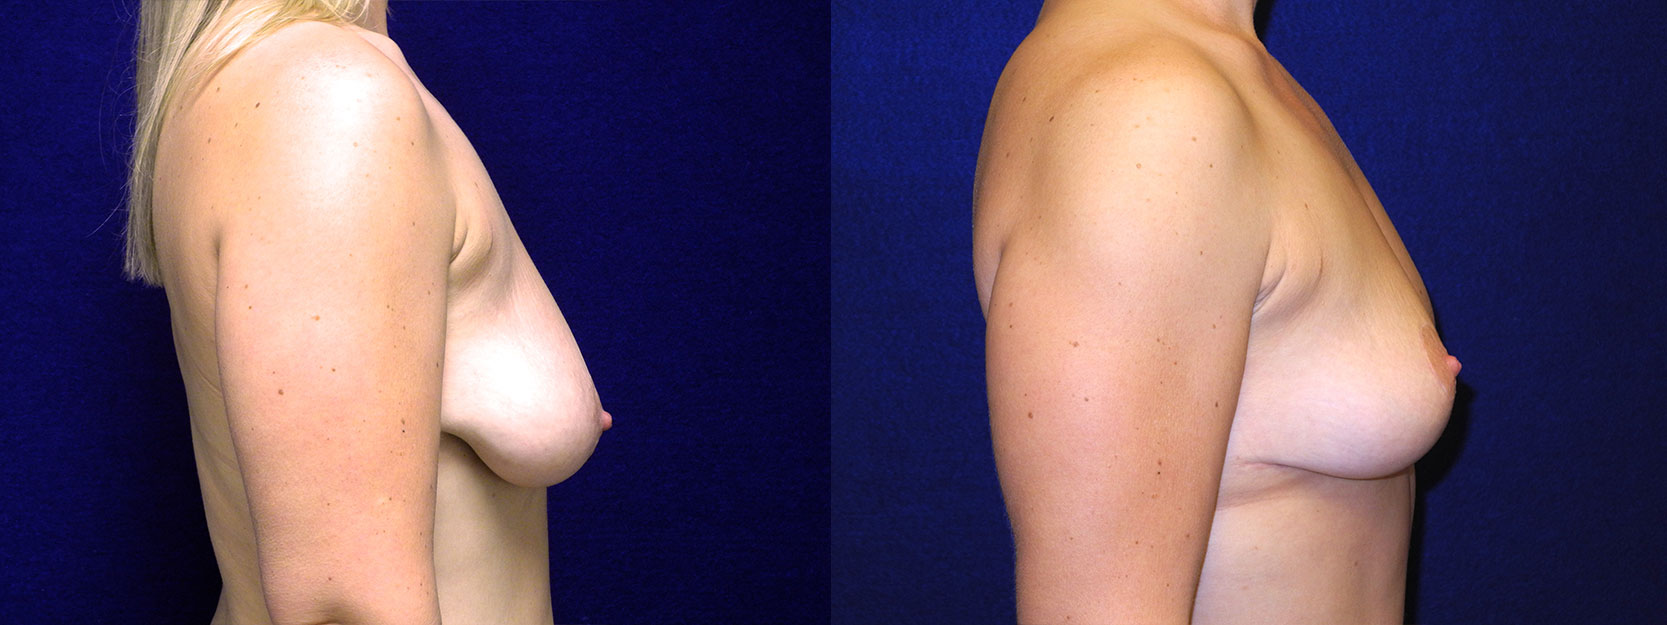 Right Profile  View - Breast Lift After Weight Loss